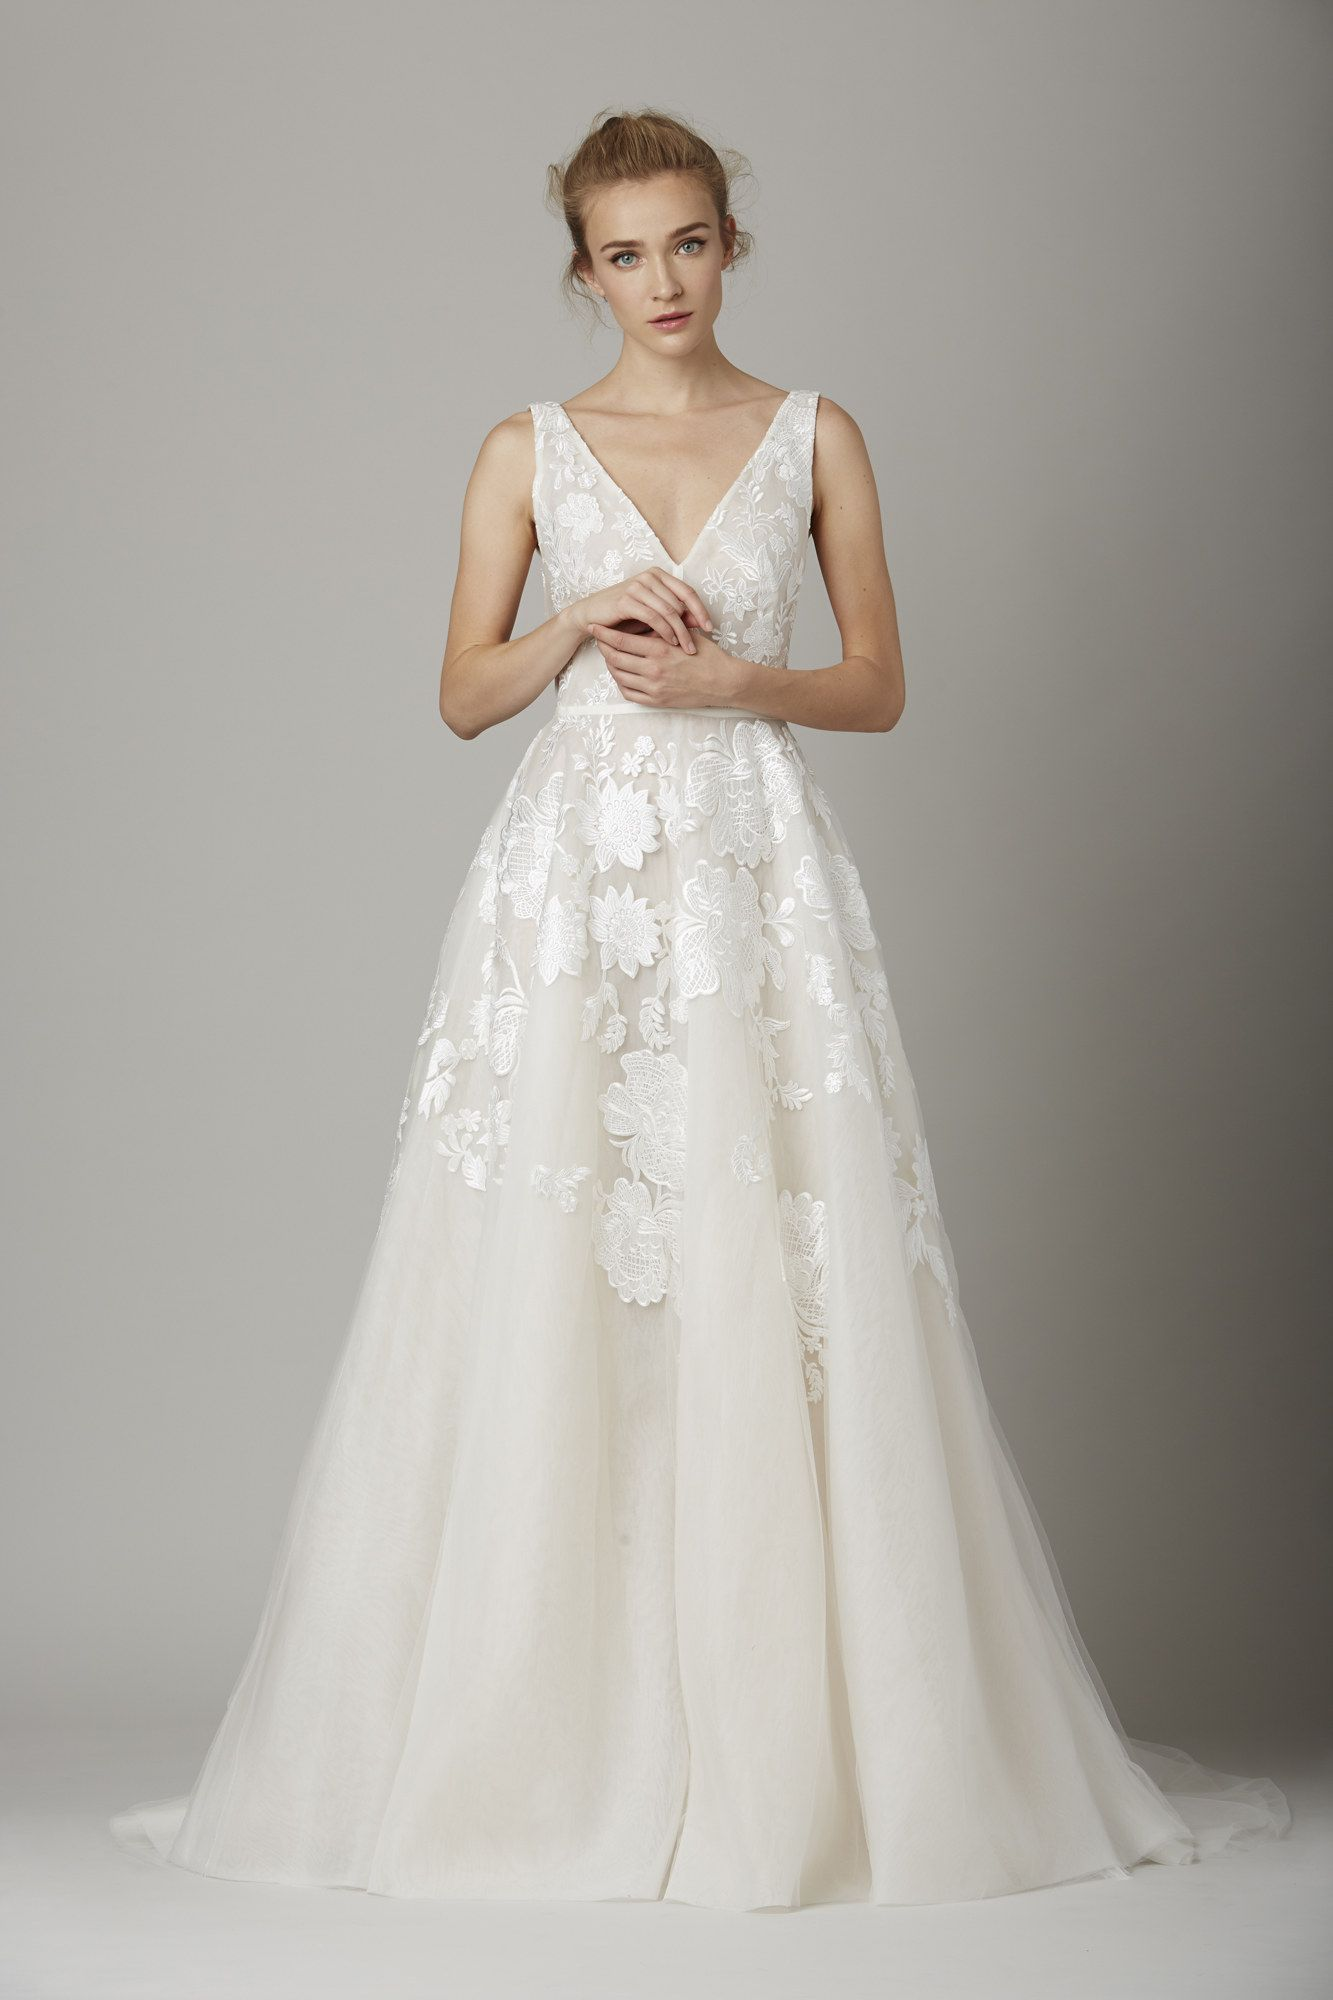 Neiman marcus dresses for weddings  Top  Glamorous Wedding Trends   Lela rose wedding dresses